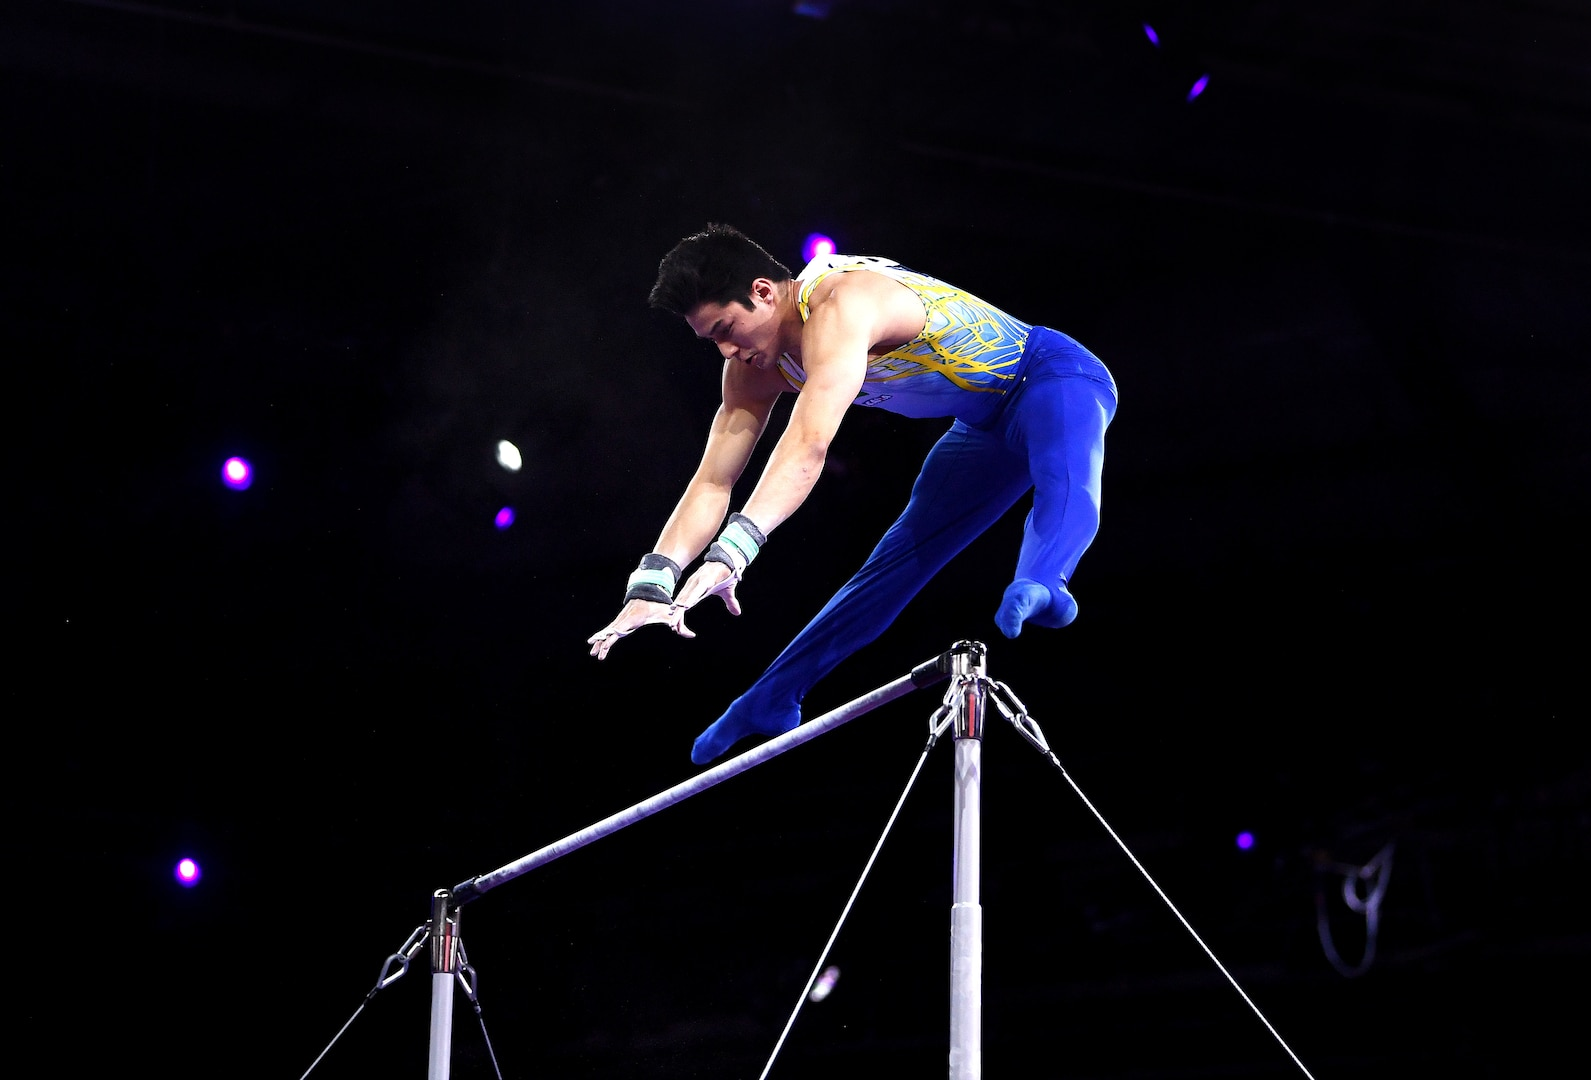 A gymnast begins to catch the high bar from a straddle position.